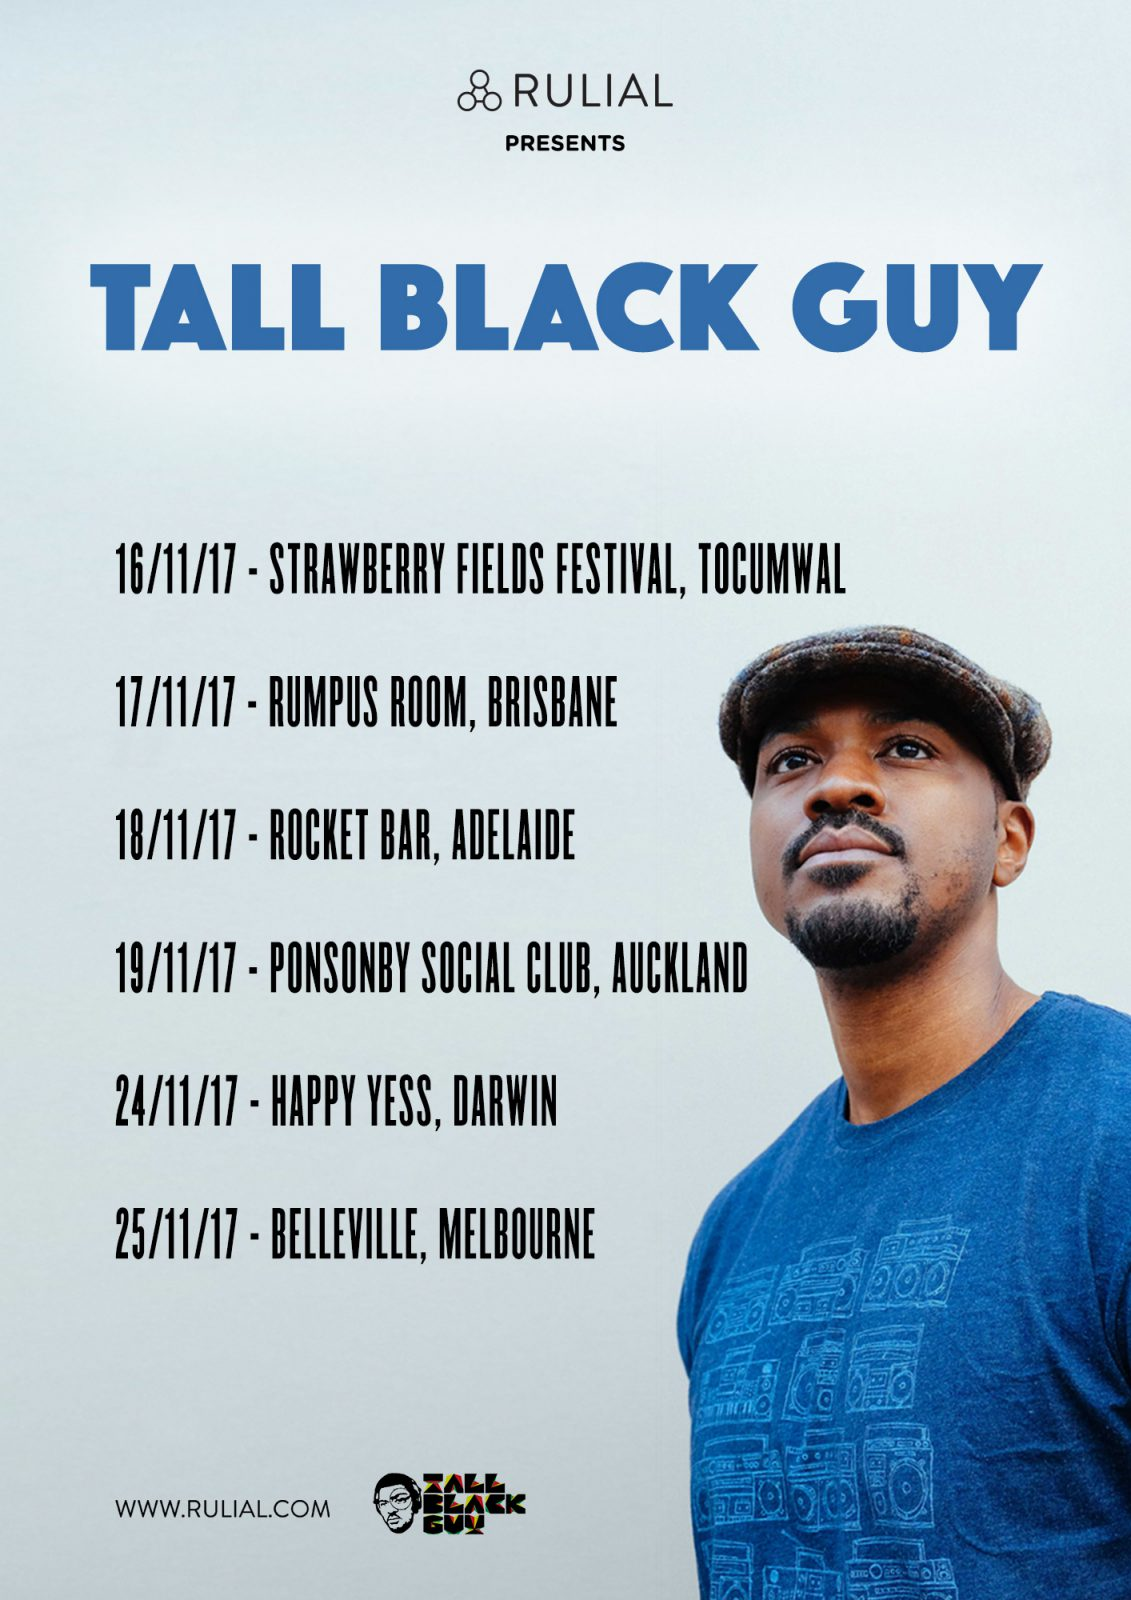 TALL BLACK GUY AUSTRALIA & NEW ZEALAND TOUR